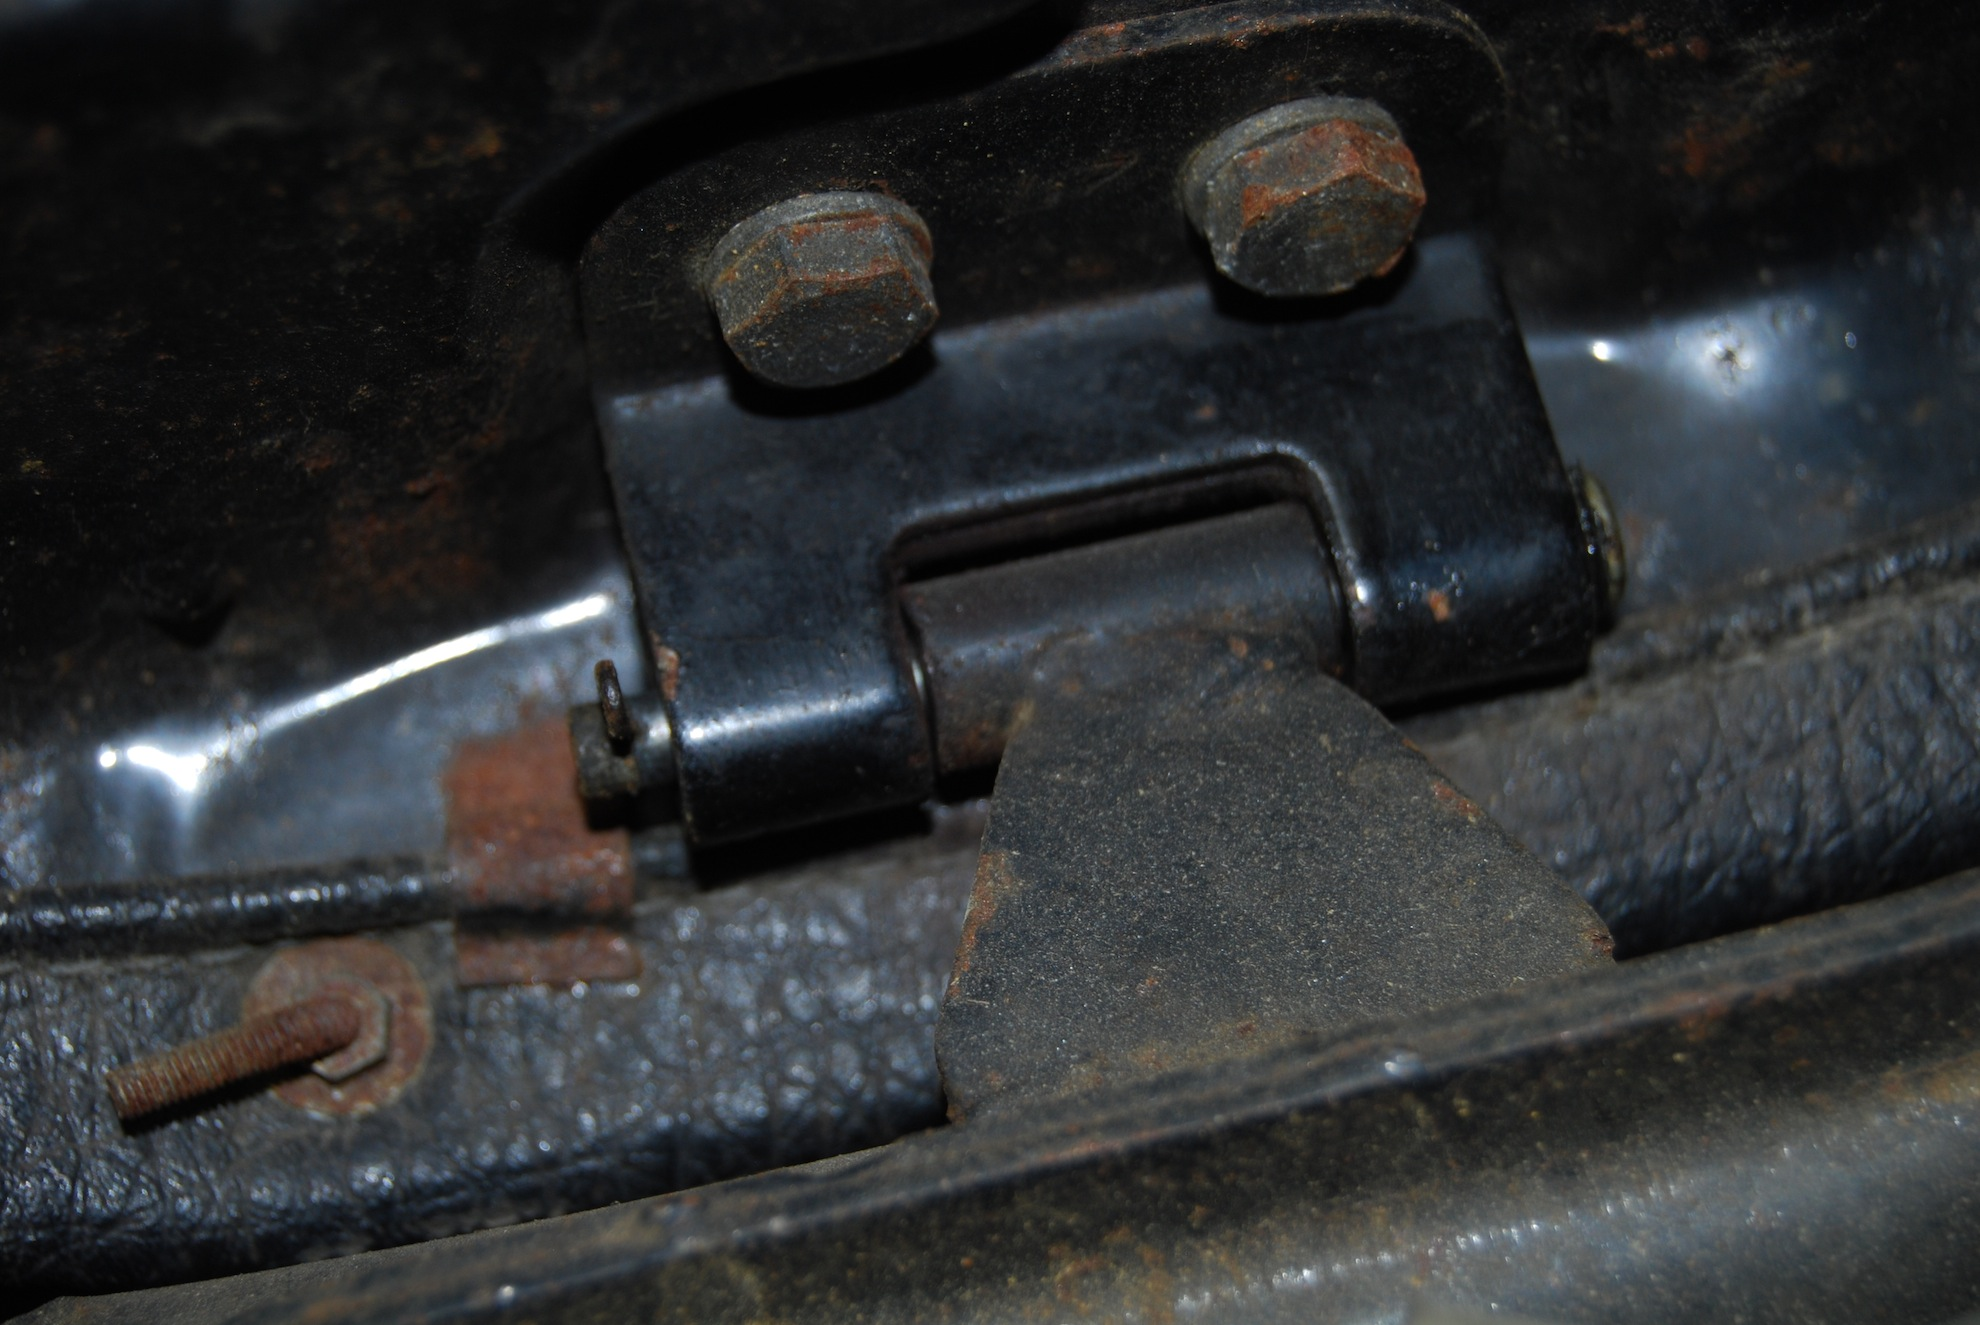 Hinge bolt and cotter pin